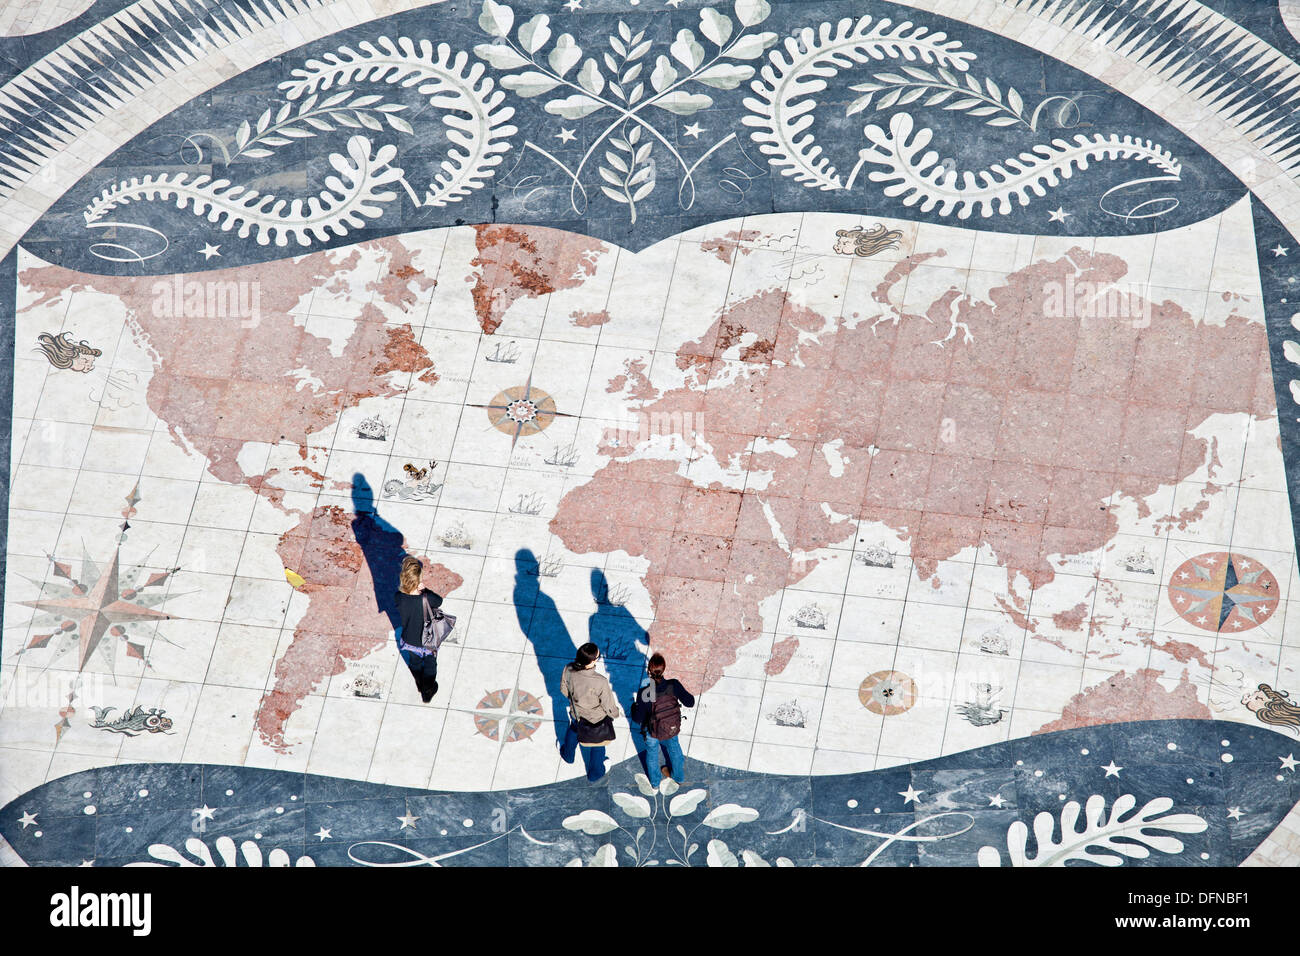 Tourists on a giant world map at the foot of the Monument to the Discoveries, Padrao dos Descobrimentos, Belem, Lisbon, - Stock Image